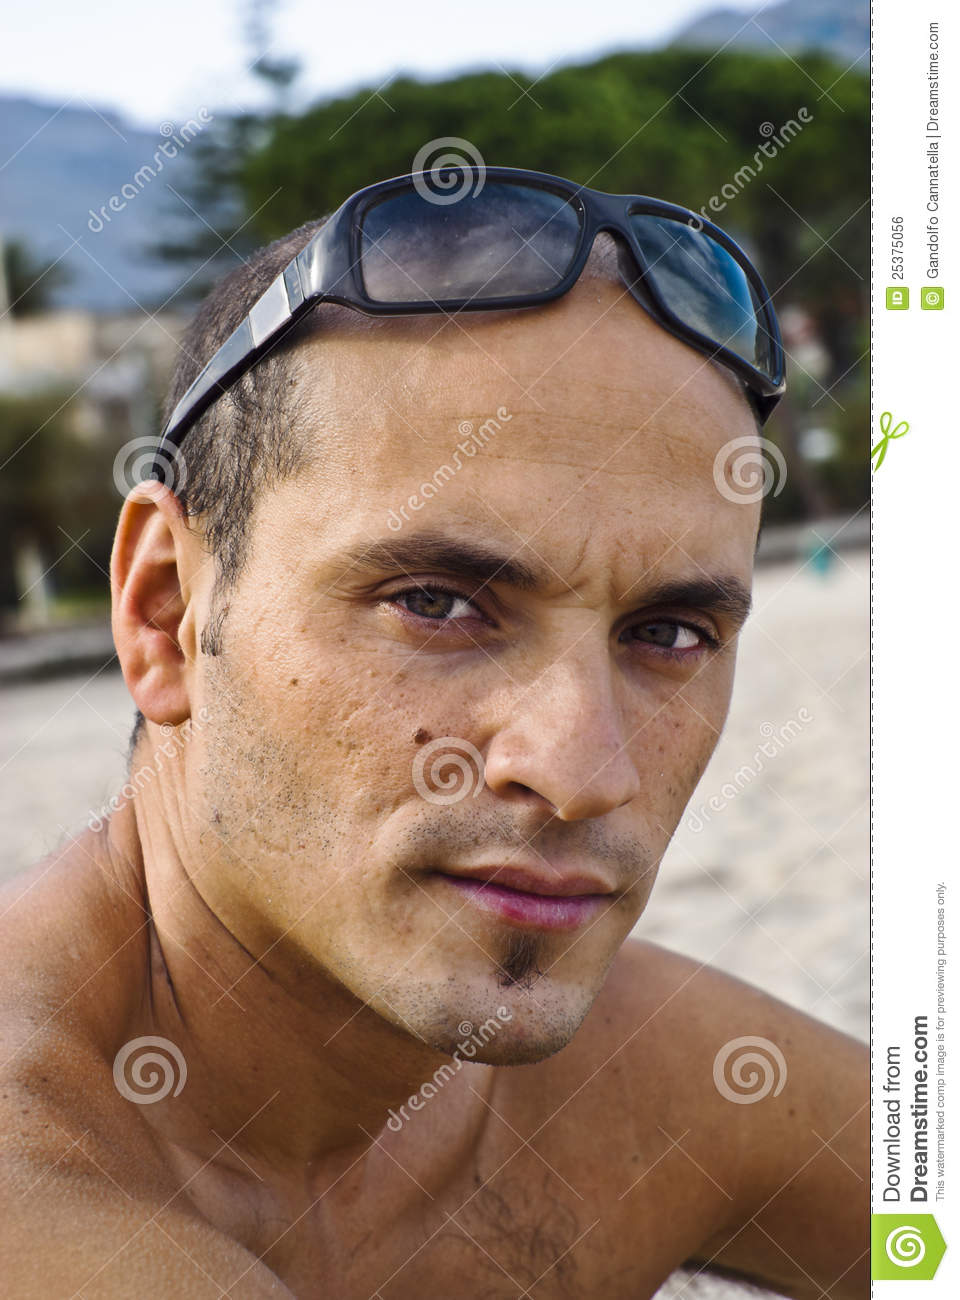 Handsome man with sunglasses on head